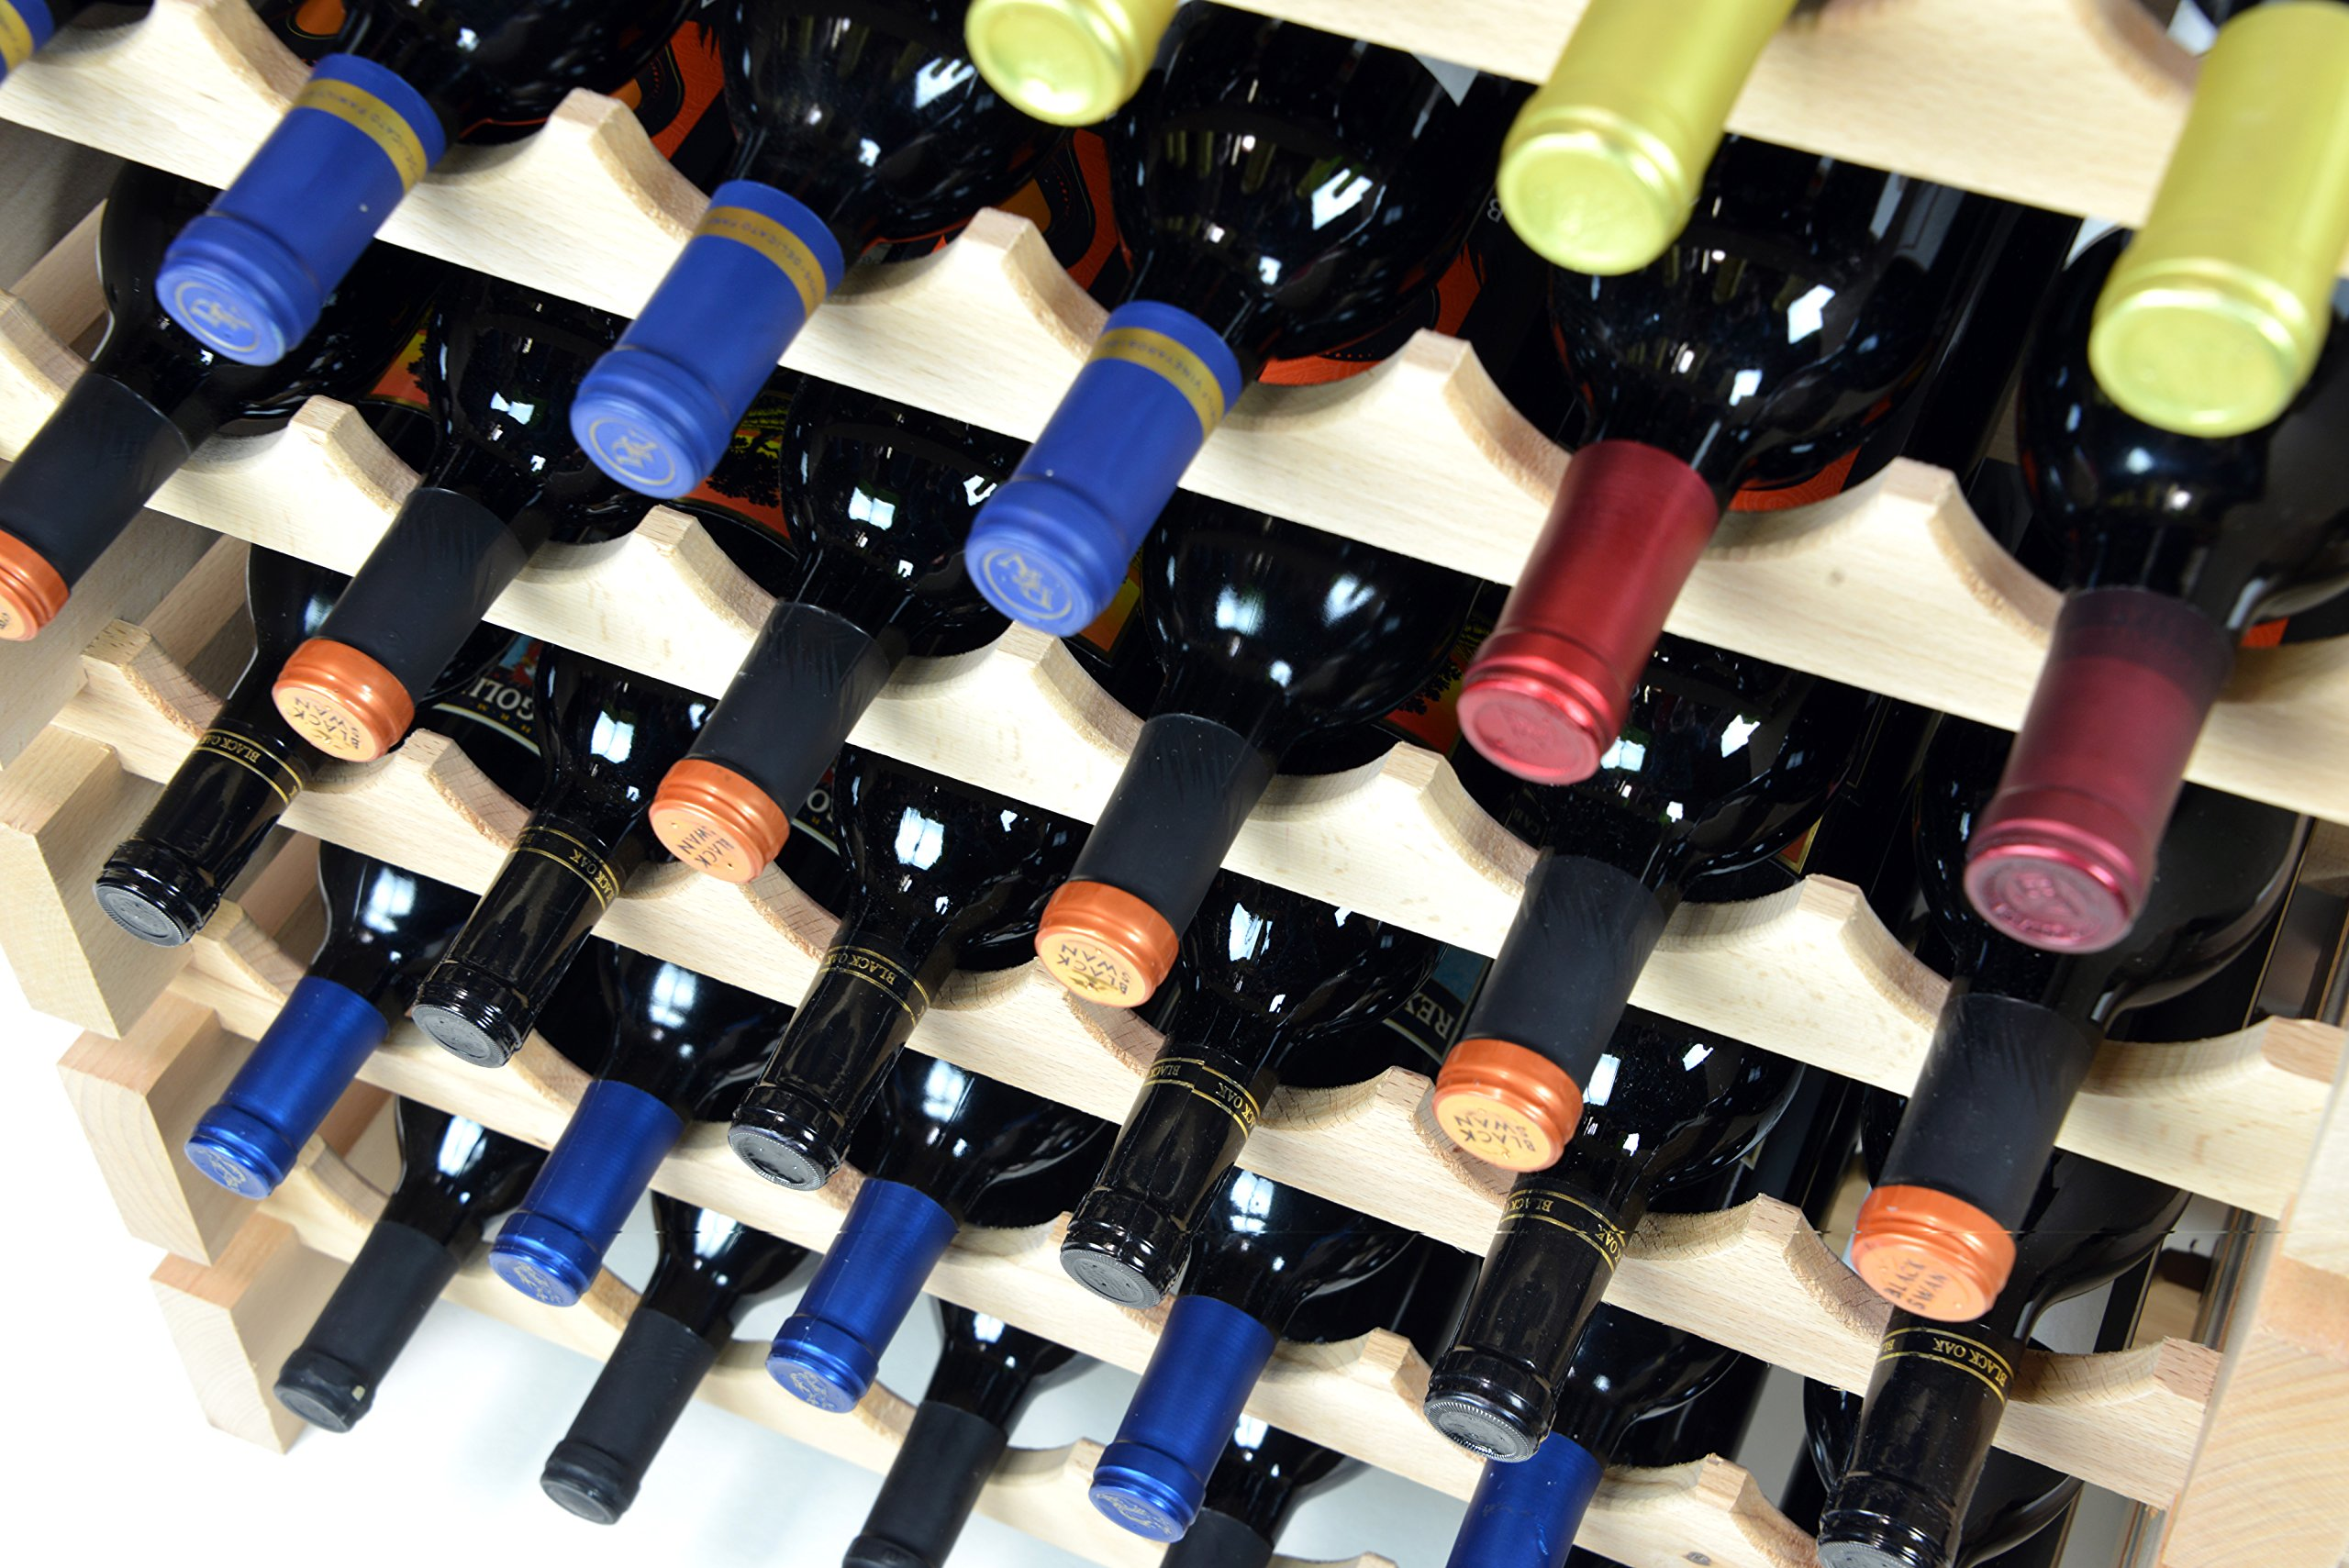 Modular Wine Rack Beechwood 48-144 Bottle Capacity 12 Bottles Across up to 12 Rows Newest Improved Model (120 Bottles - 10 Rows) by sfDisplay.com,LLC. (Image #5)